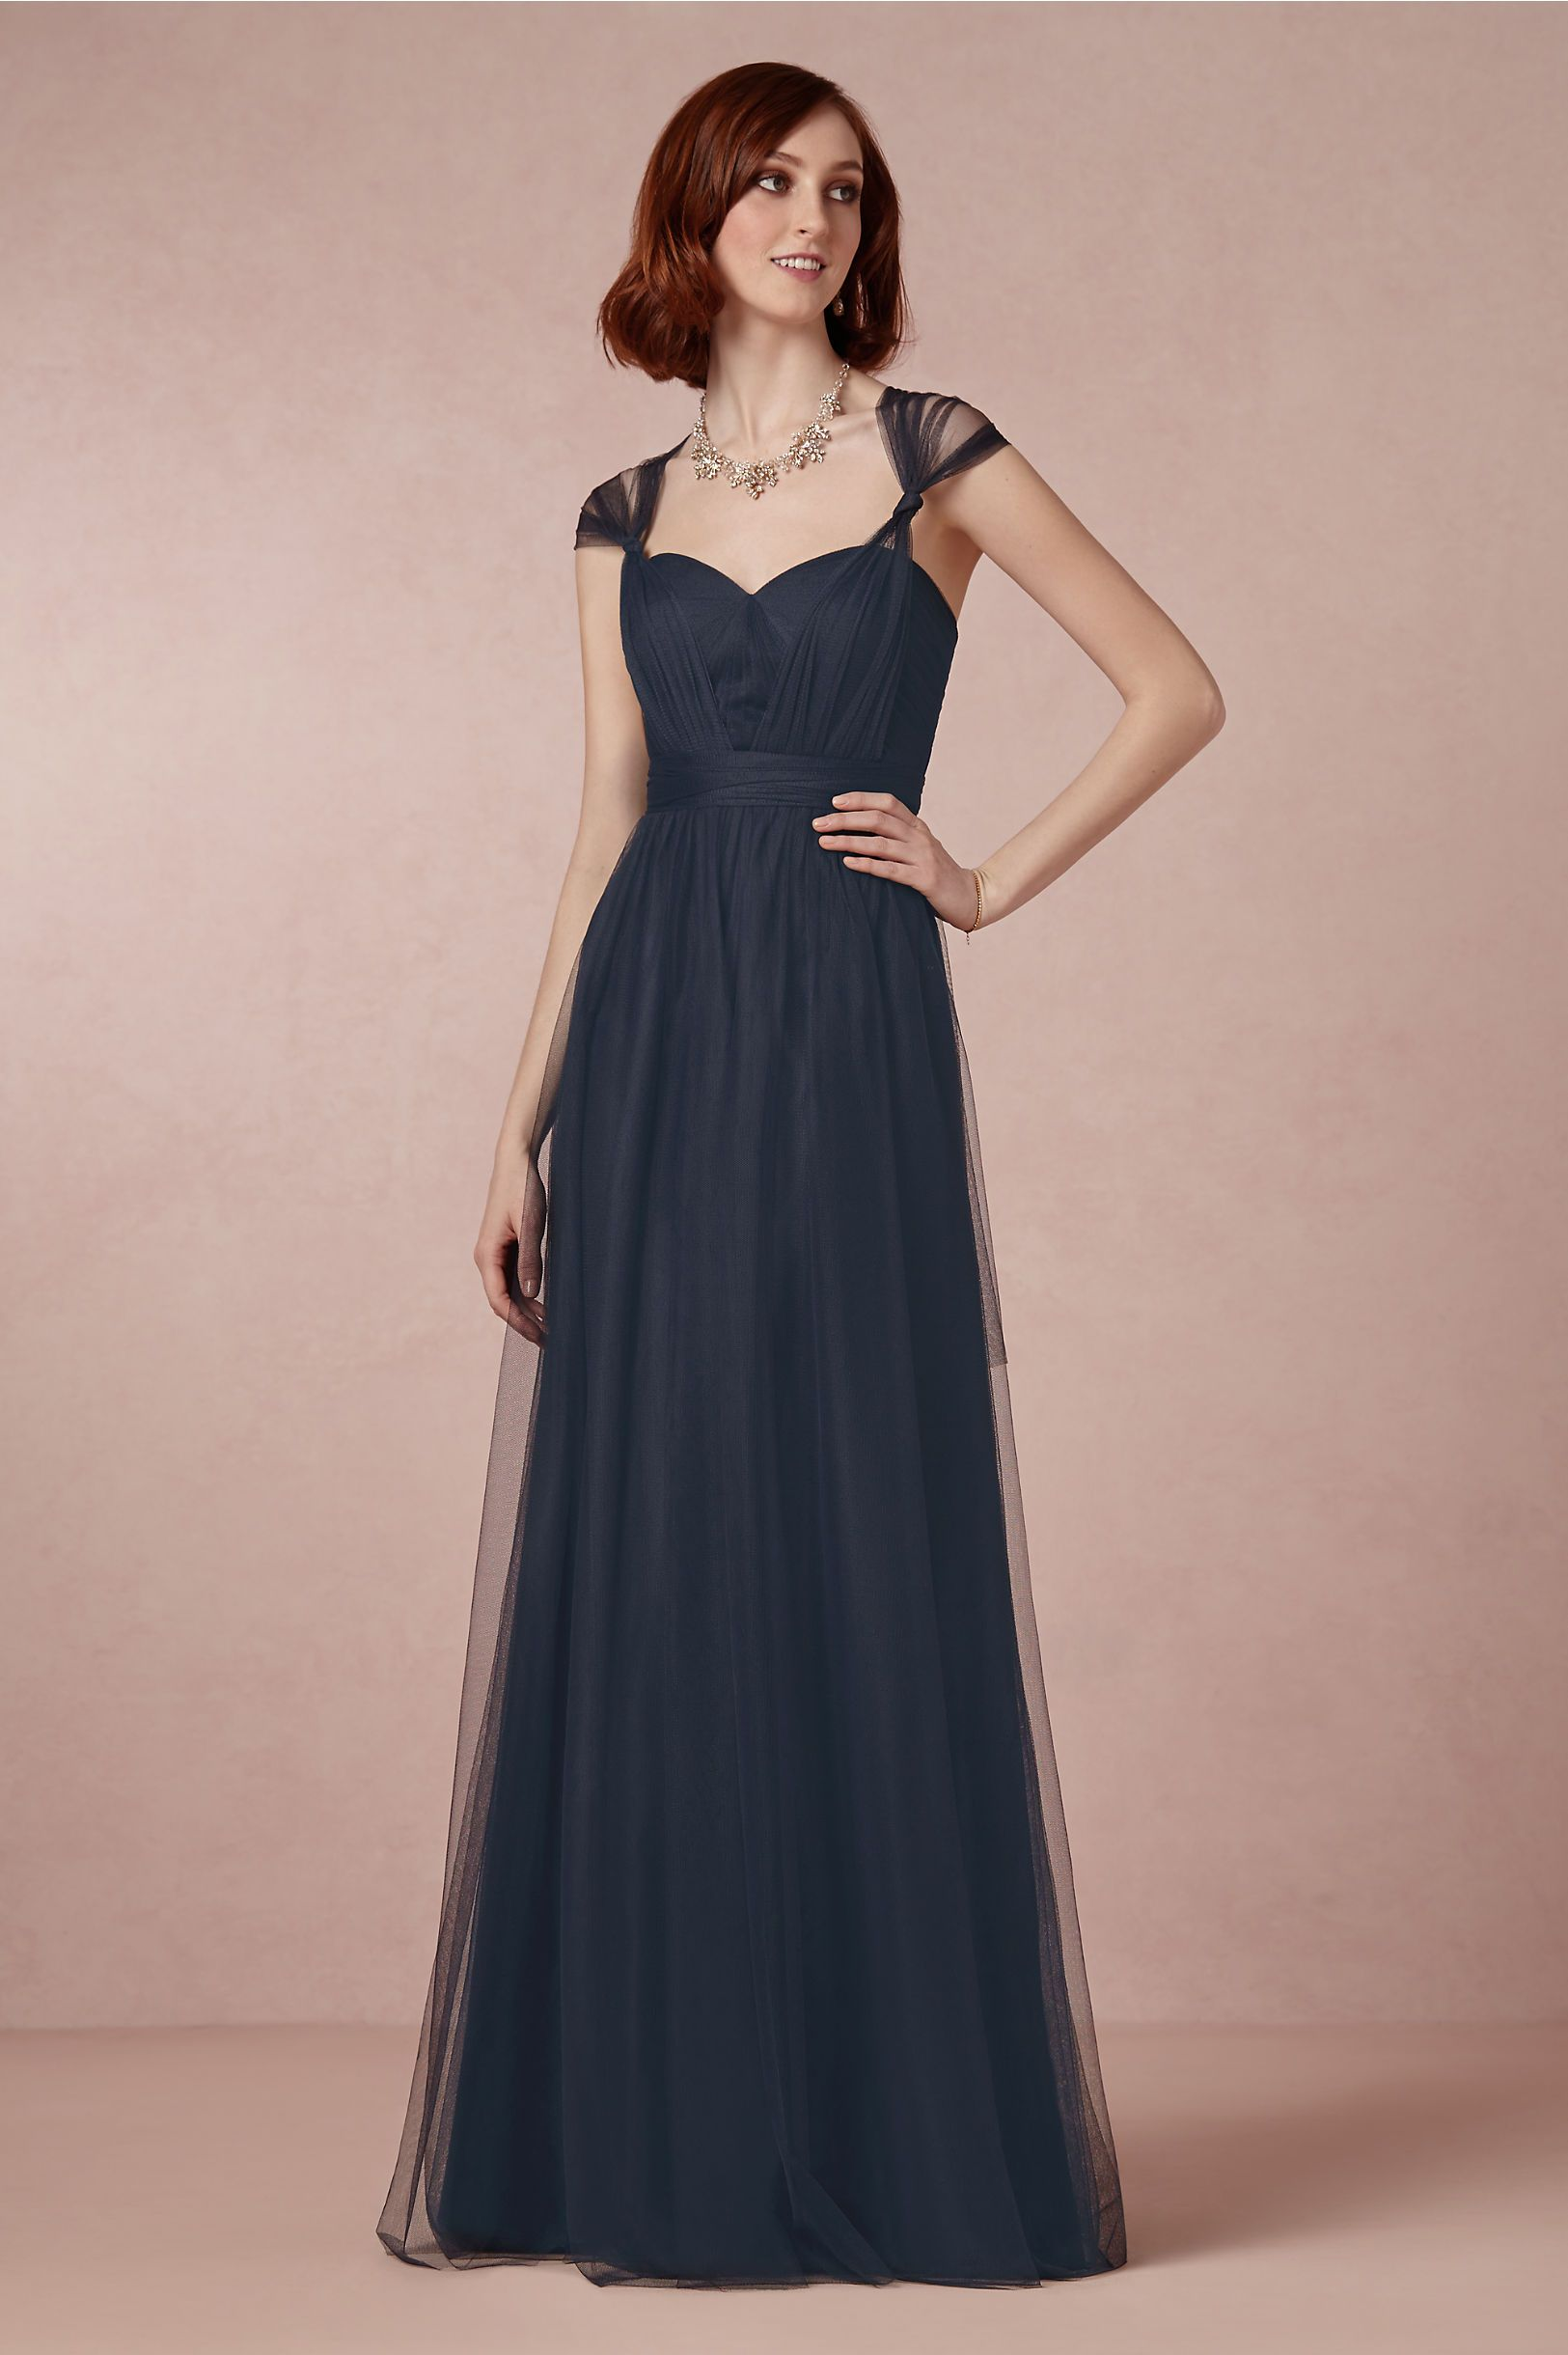 Annabelle Dress in Bride Reception Dresses at BHLDN // alternate ...